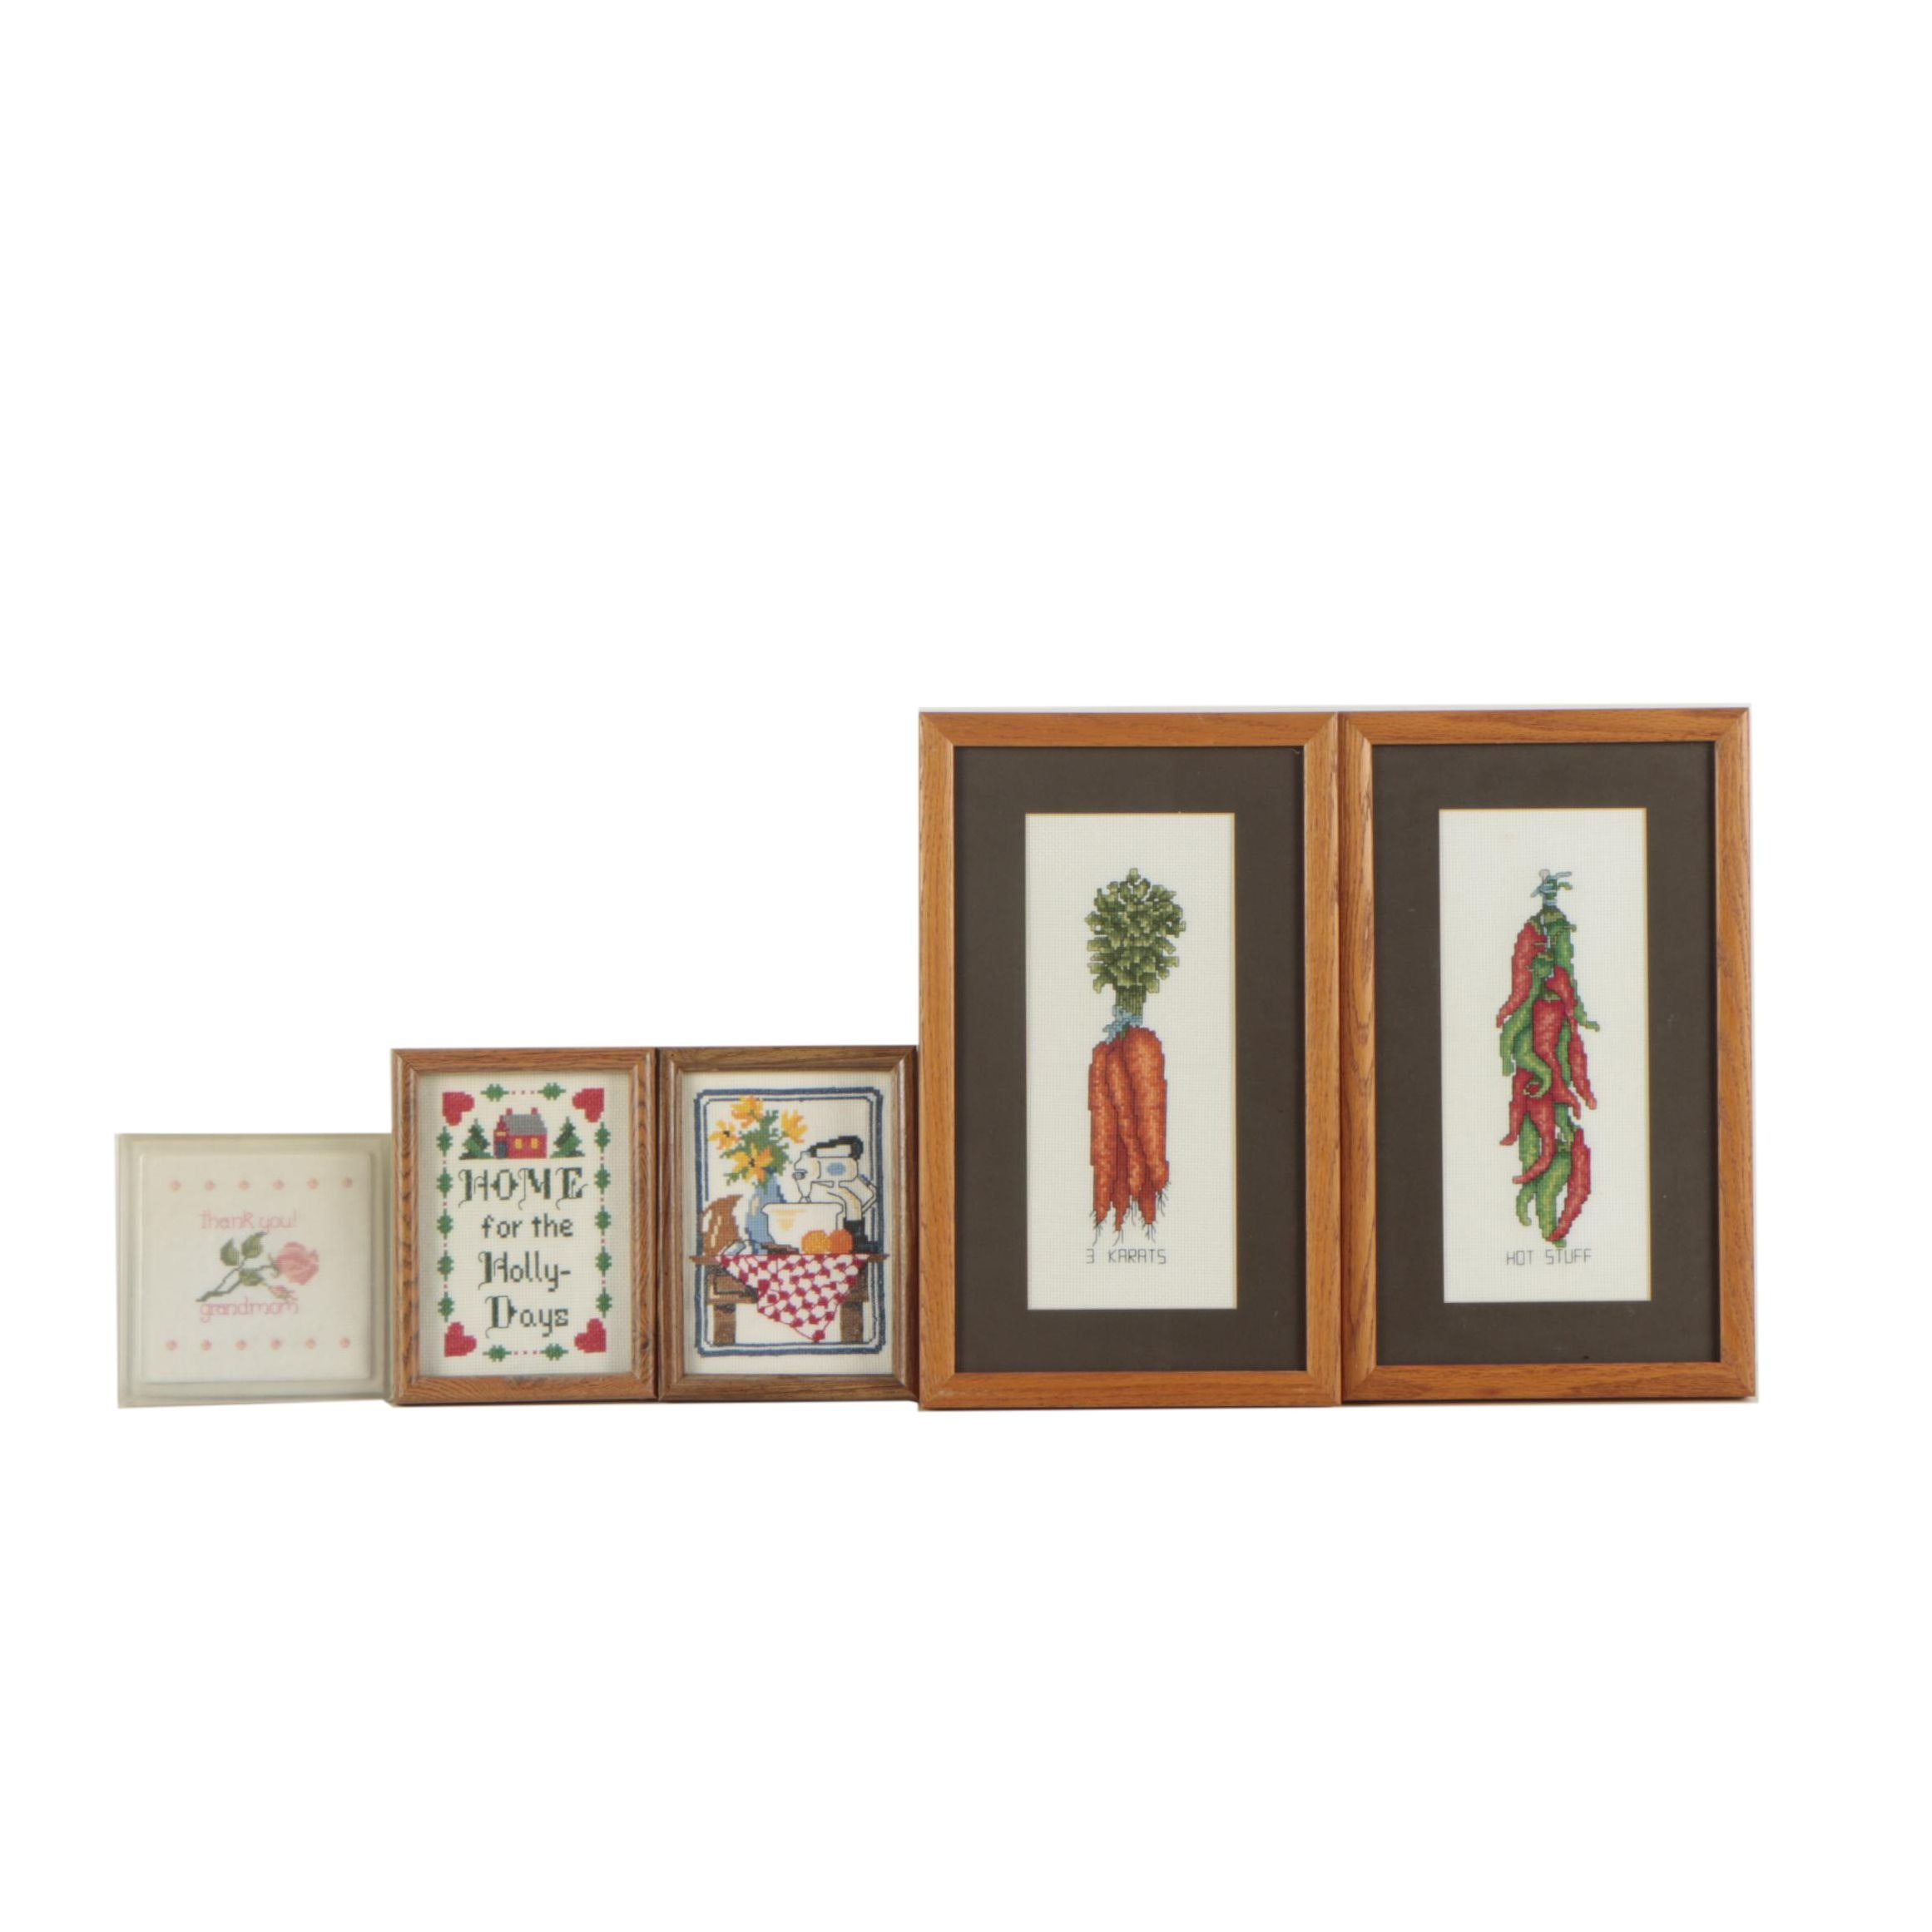 Collection of Cross-Stitch Embroidery Wall Decor